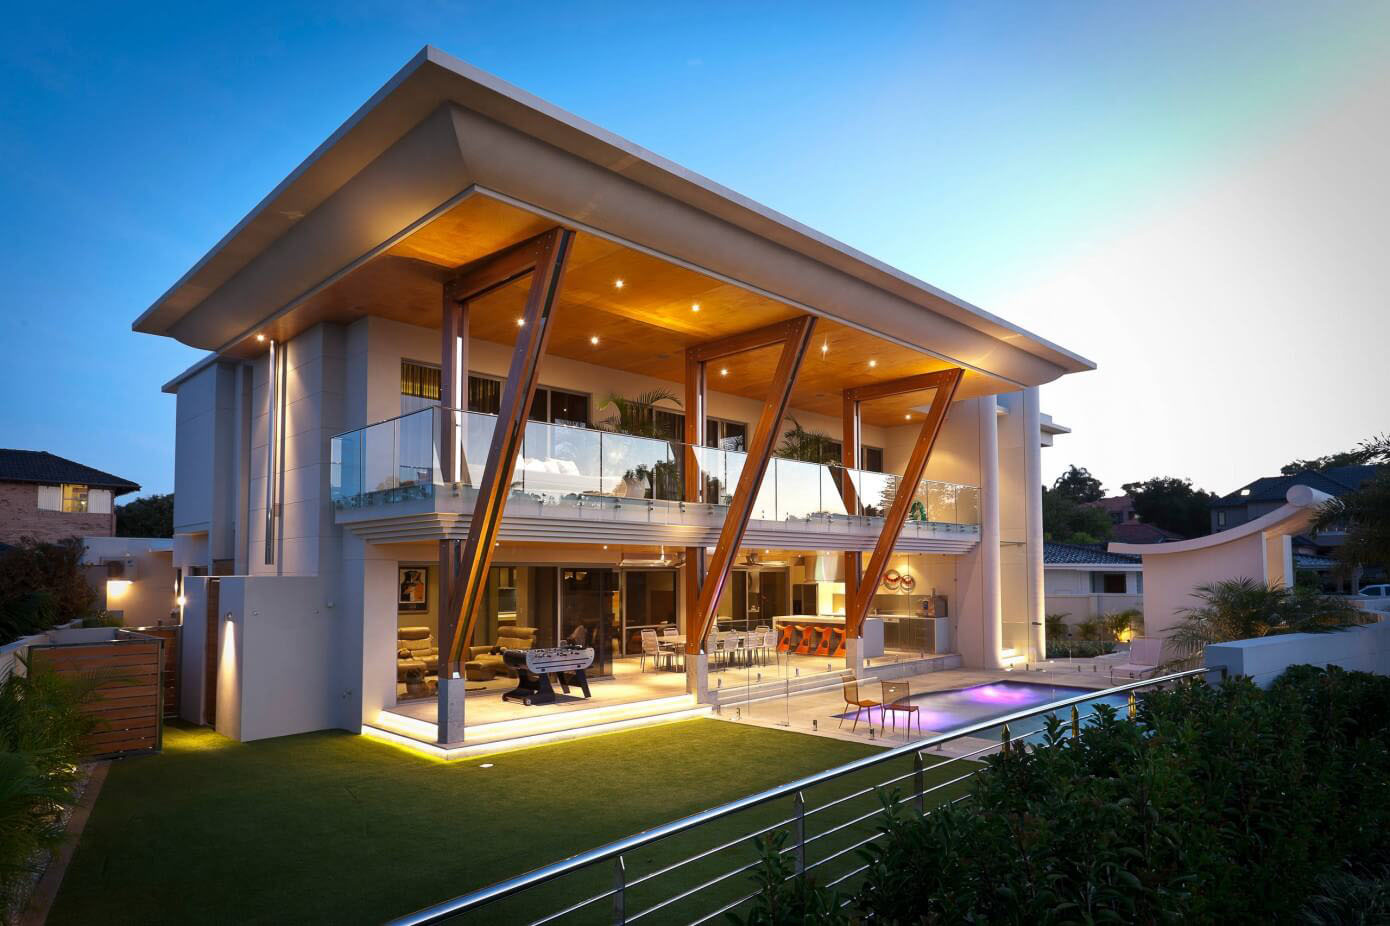 Ultra modern home in perth with large roof idesignarch for Pics of modern houses